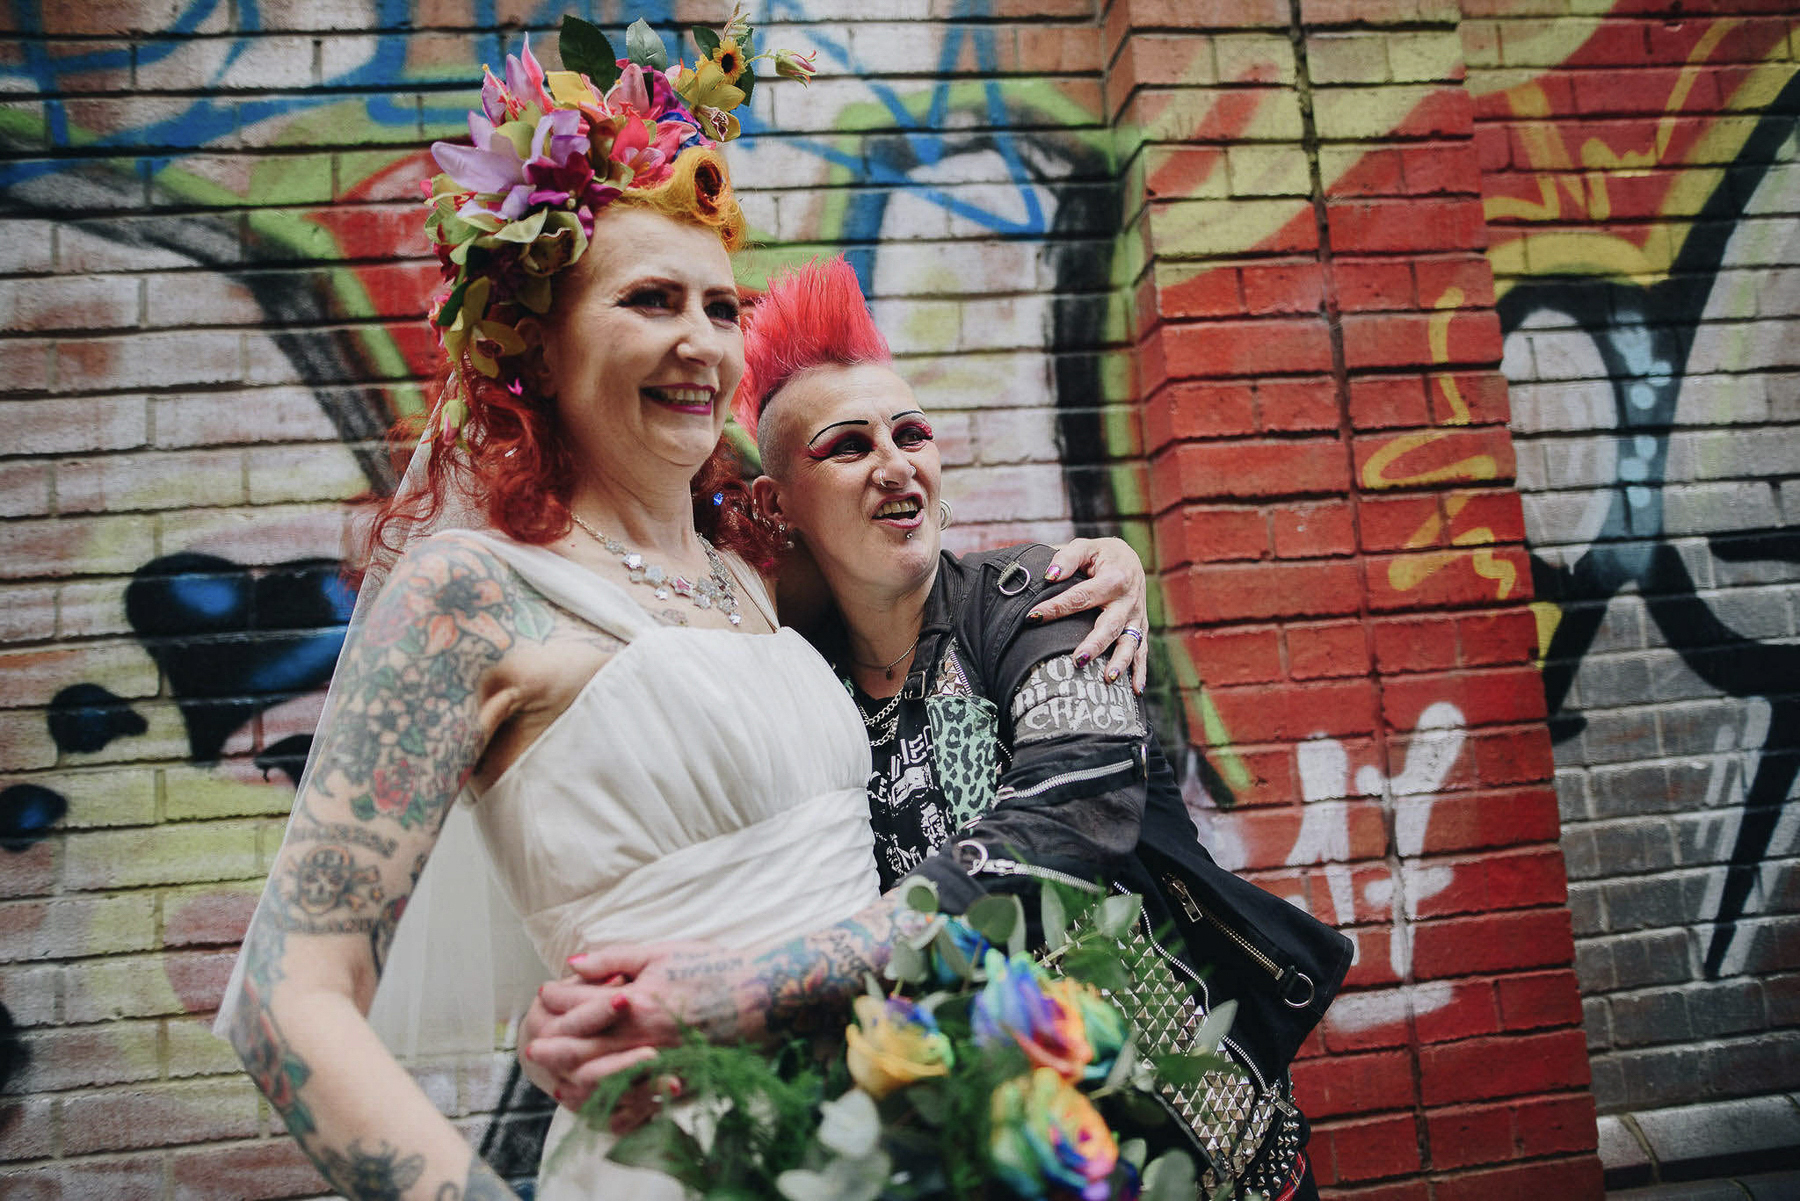 Alternative_Manchester_Wedding_Photography_The_Pin-Up_Bride_Photography-58.jpg